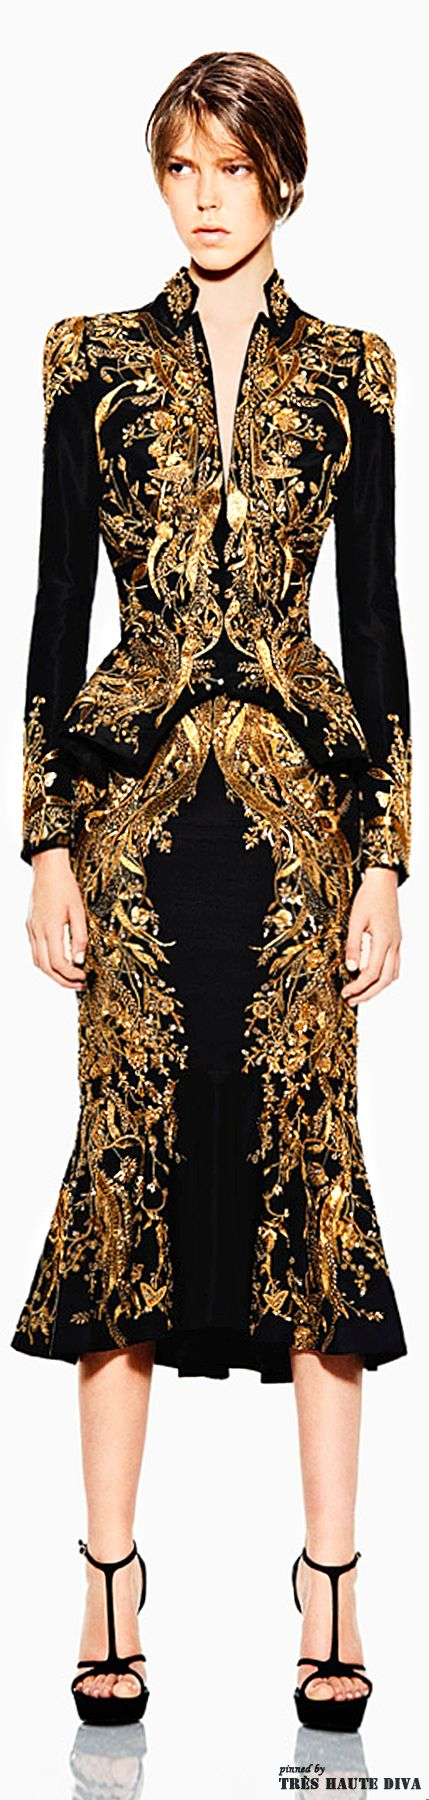 Mother of black and gold! There are hardly any words to do this creation anywhere near justice. I simply adore the golden patterned embroidery throughout, and of course, the peplum really adds the depth needed.